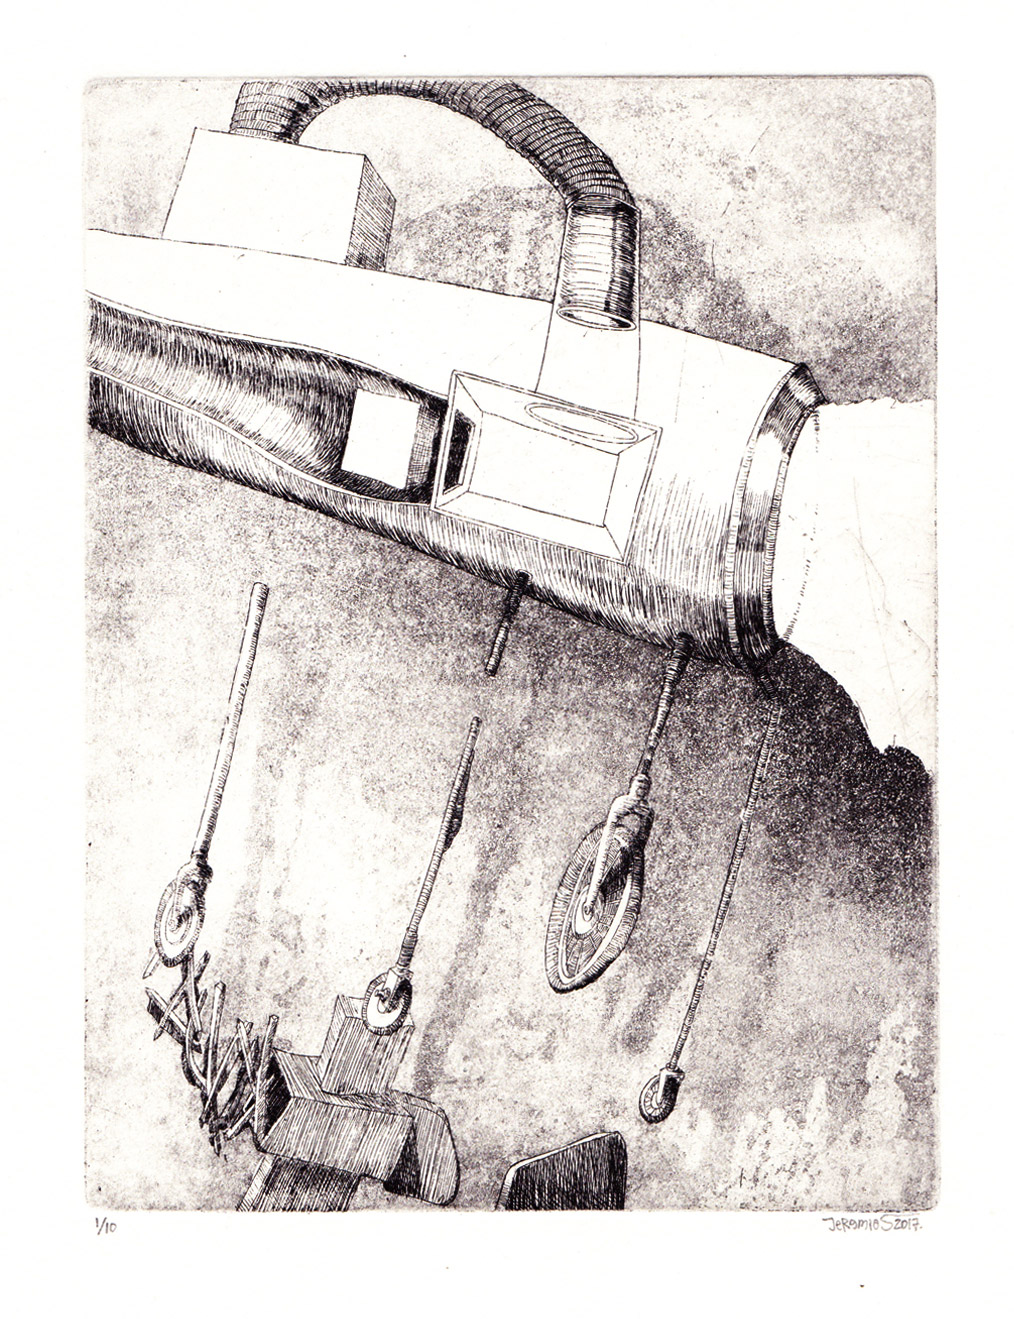 Cubic Drive; 19,5 x 14,5 cm; etching and aquatint; 2017